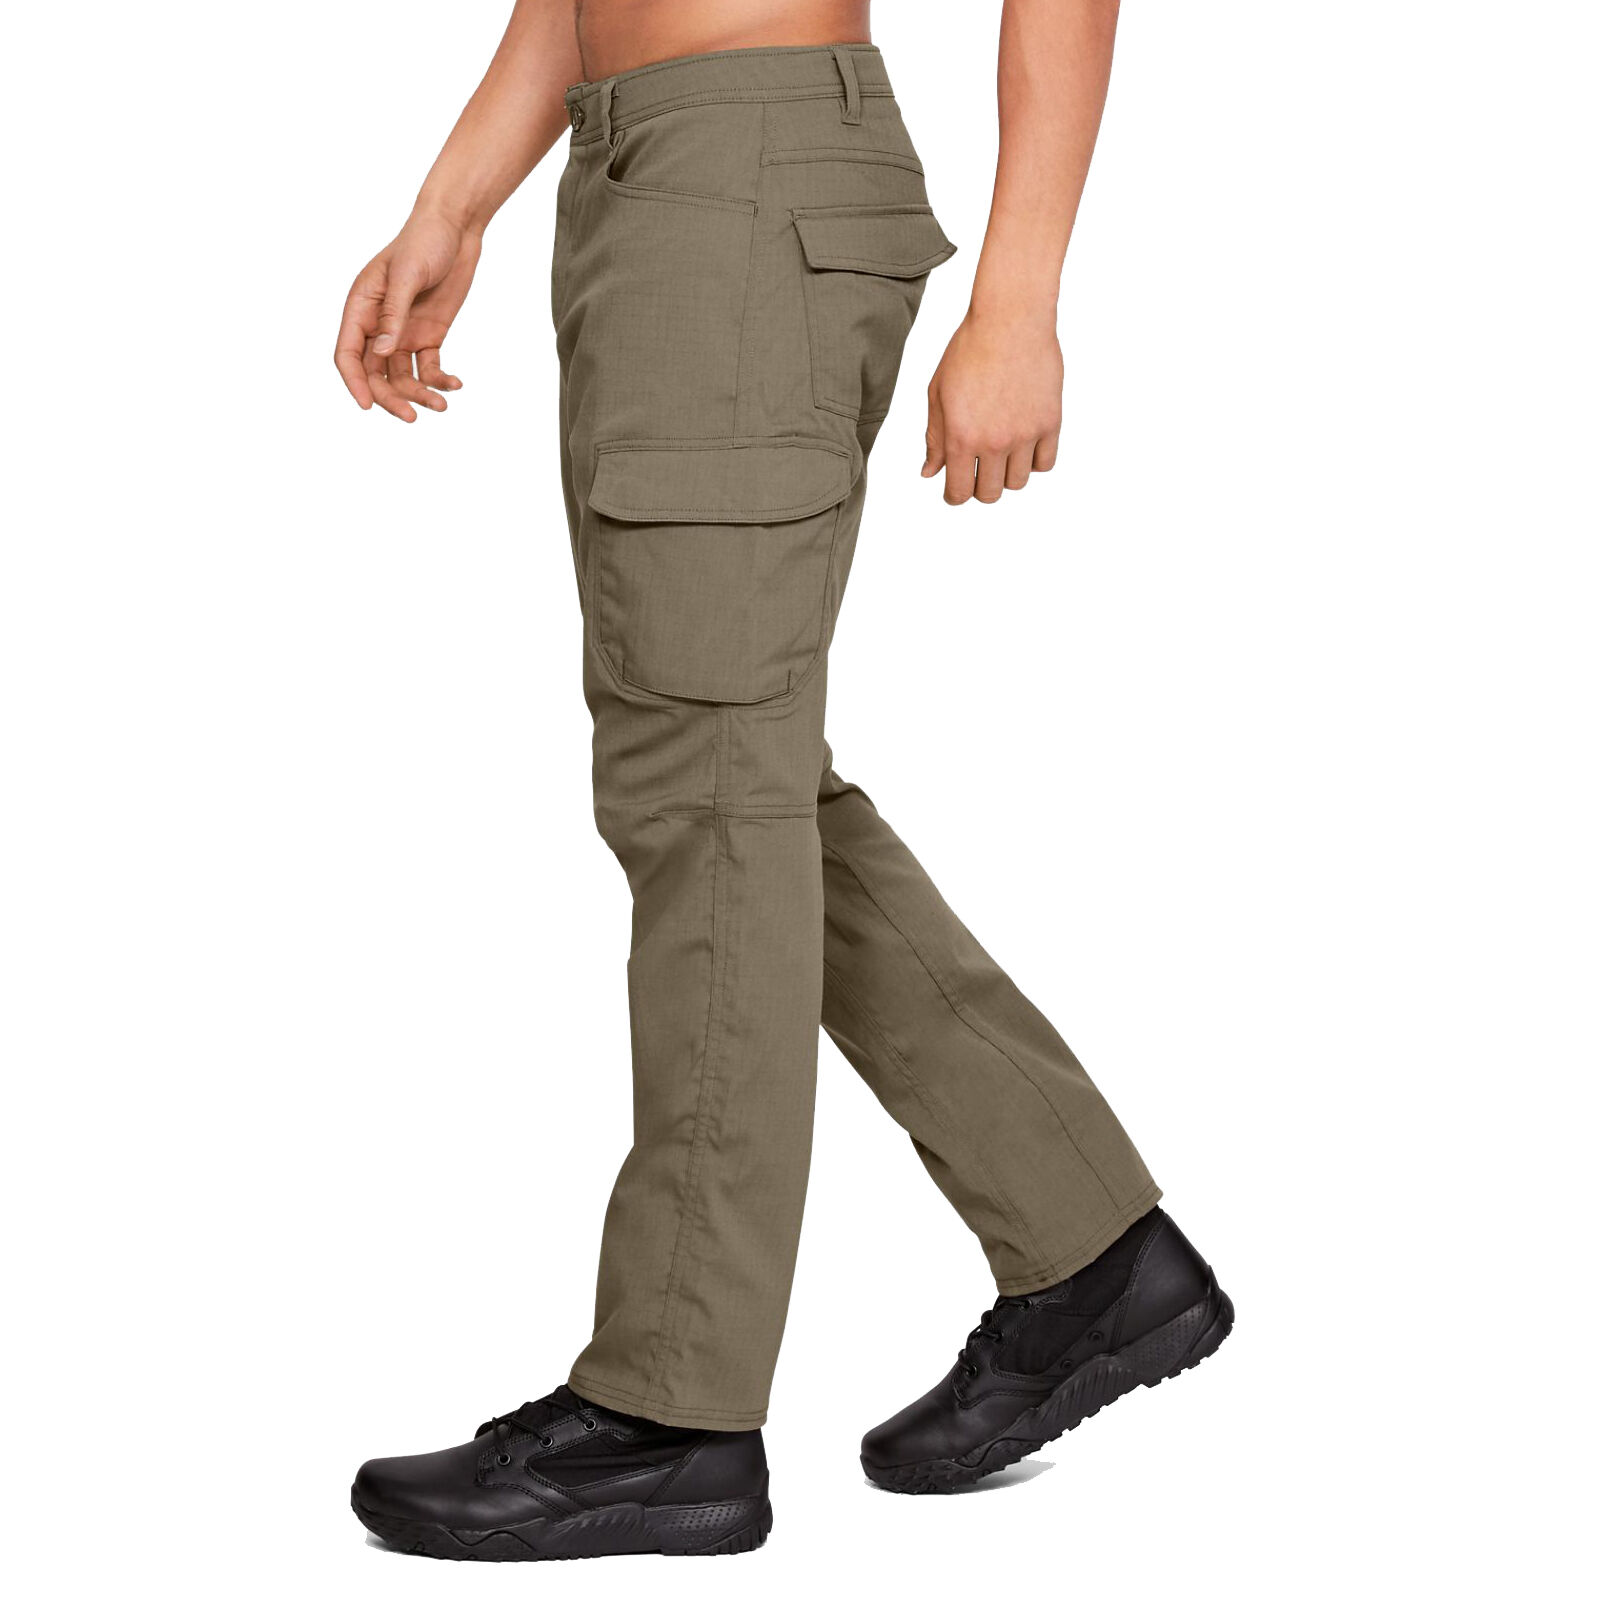 Under Armour Mens Enduro Cargo Pants Under Armour Apparel 1316927